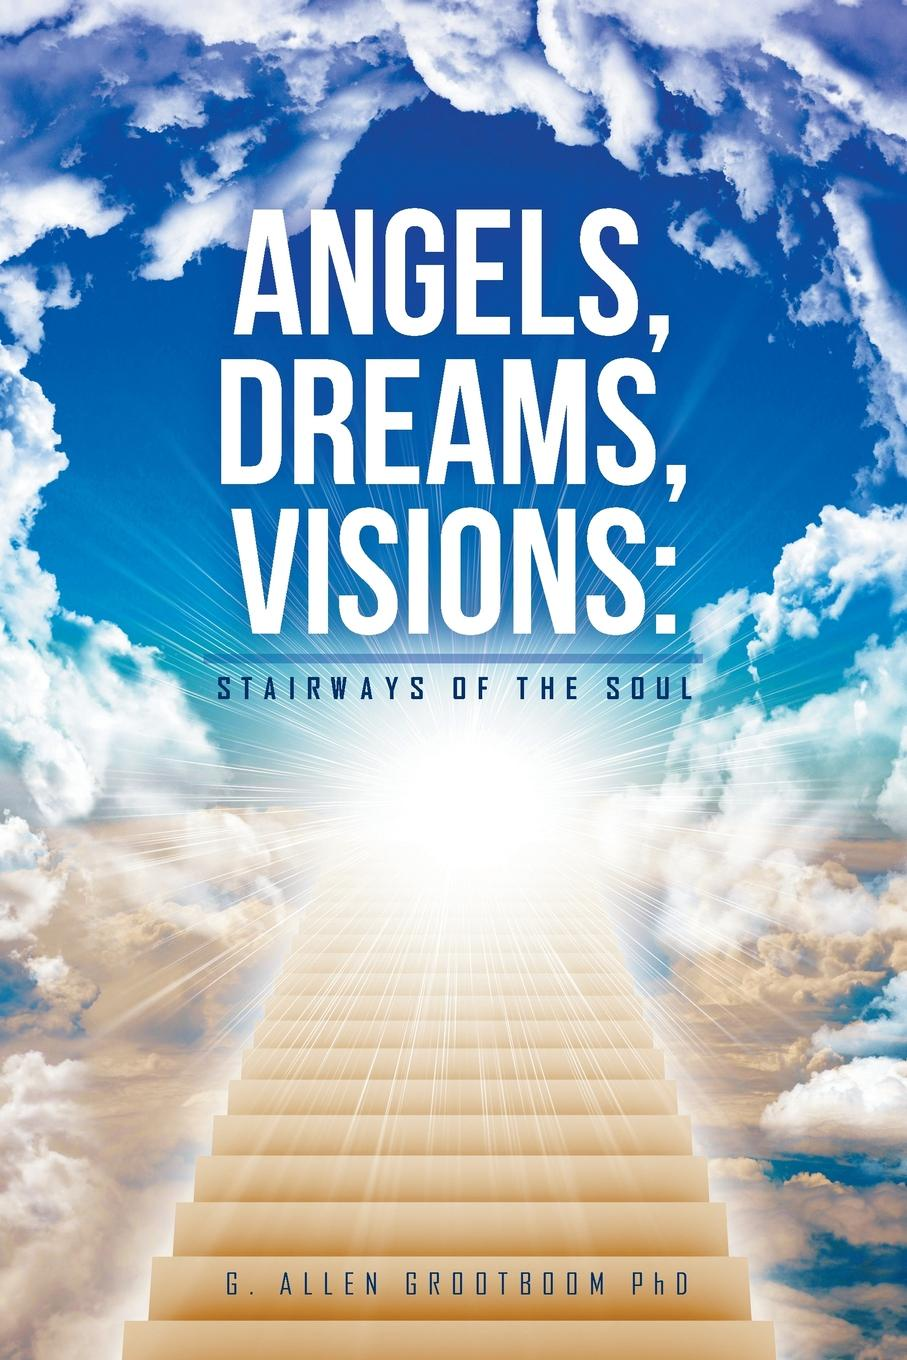 G. Allen Grootboom PhD Angels, Dreams, Visions. Stairways of the Soul kevin lindsey memoirs of the heart visions from the soul